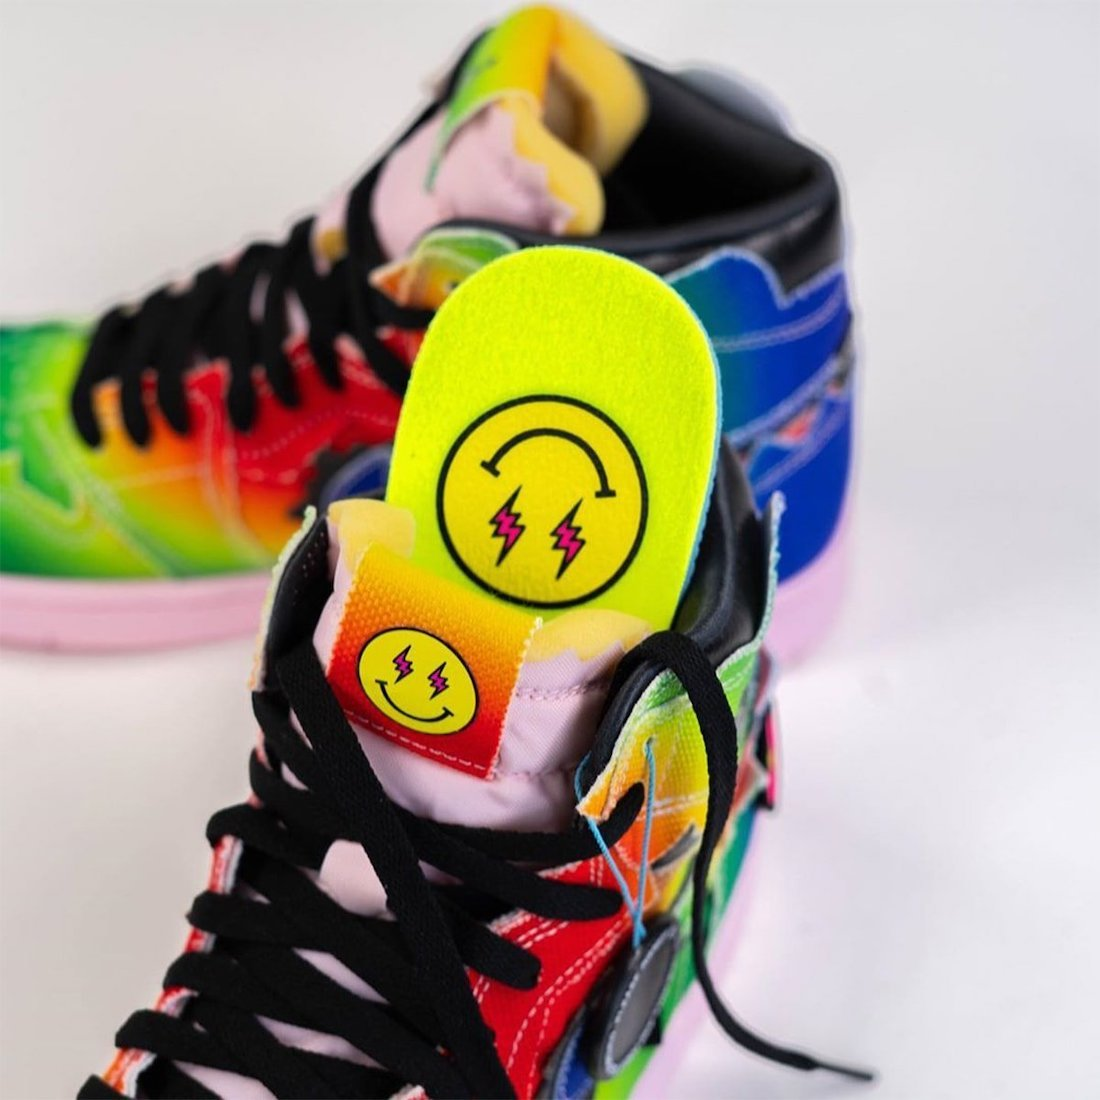 J Balvin Air Jordan 1 High DC3481-900 Release Date